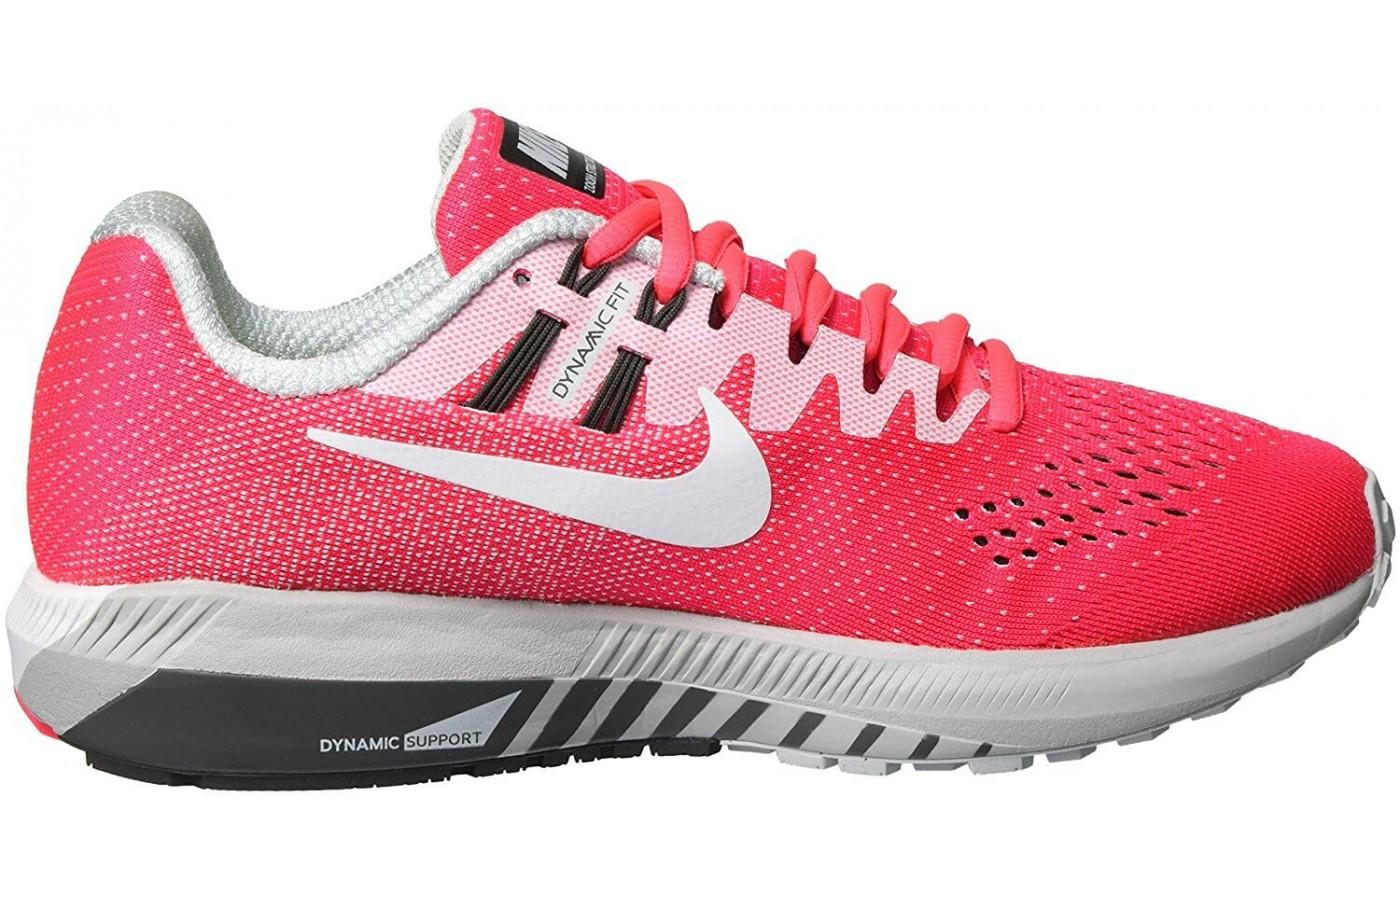 Nike air zoom structure 20 has a great design